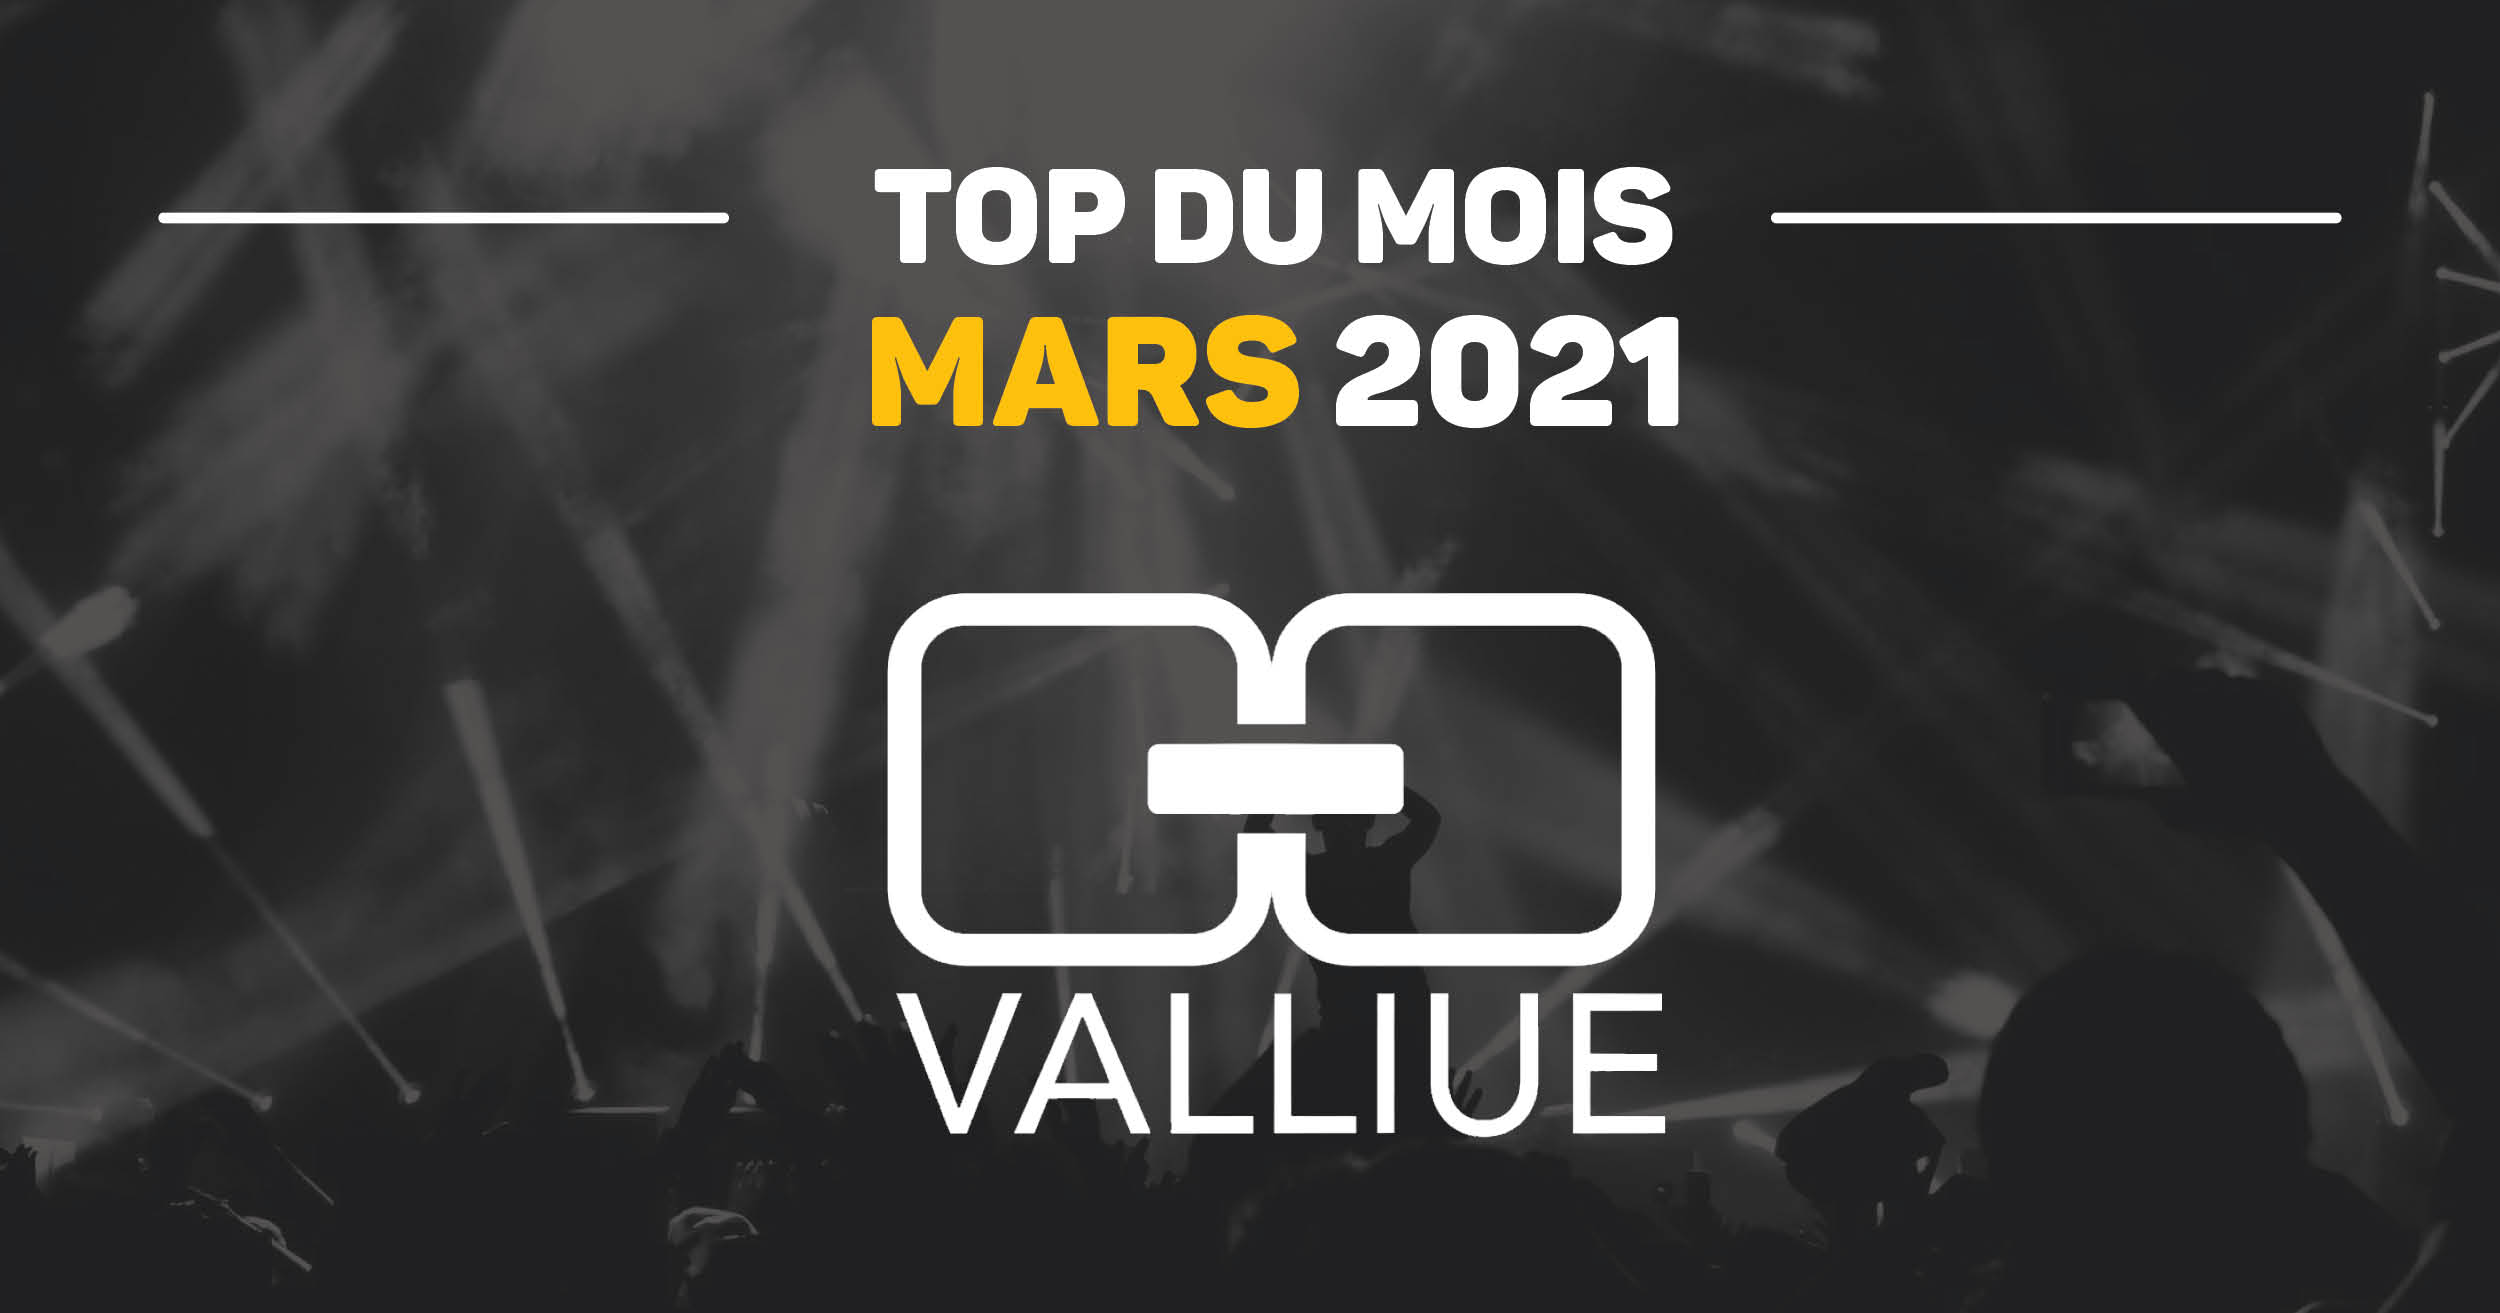 top-du-mois-valliue_mars21_facebook